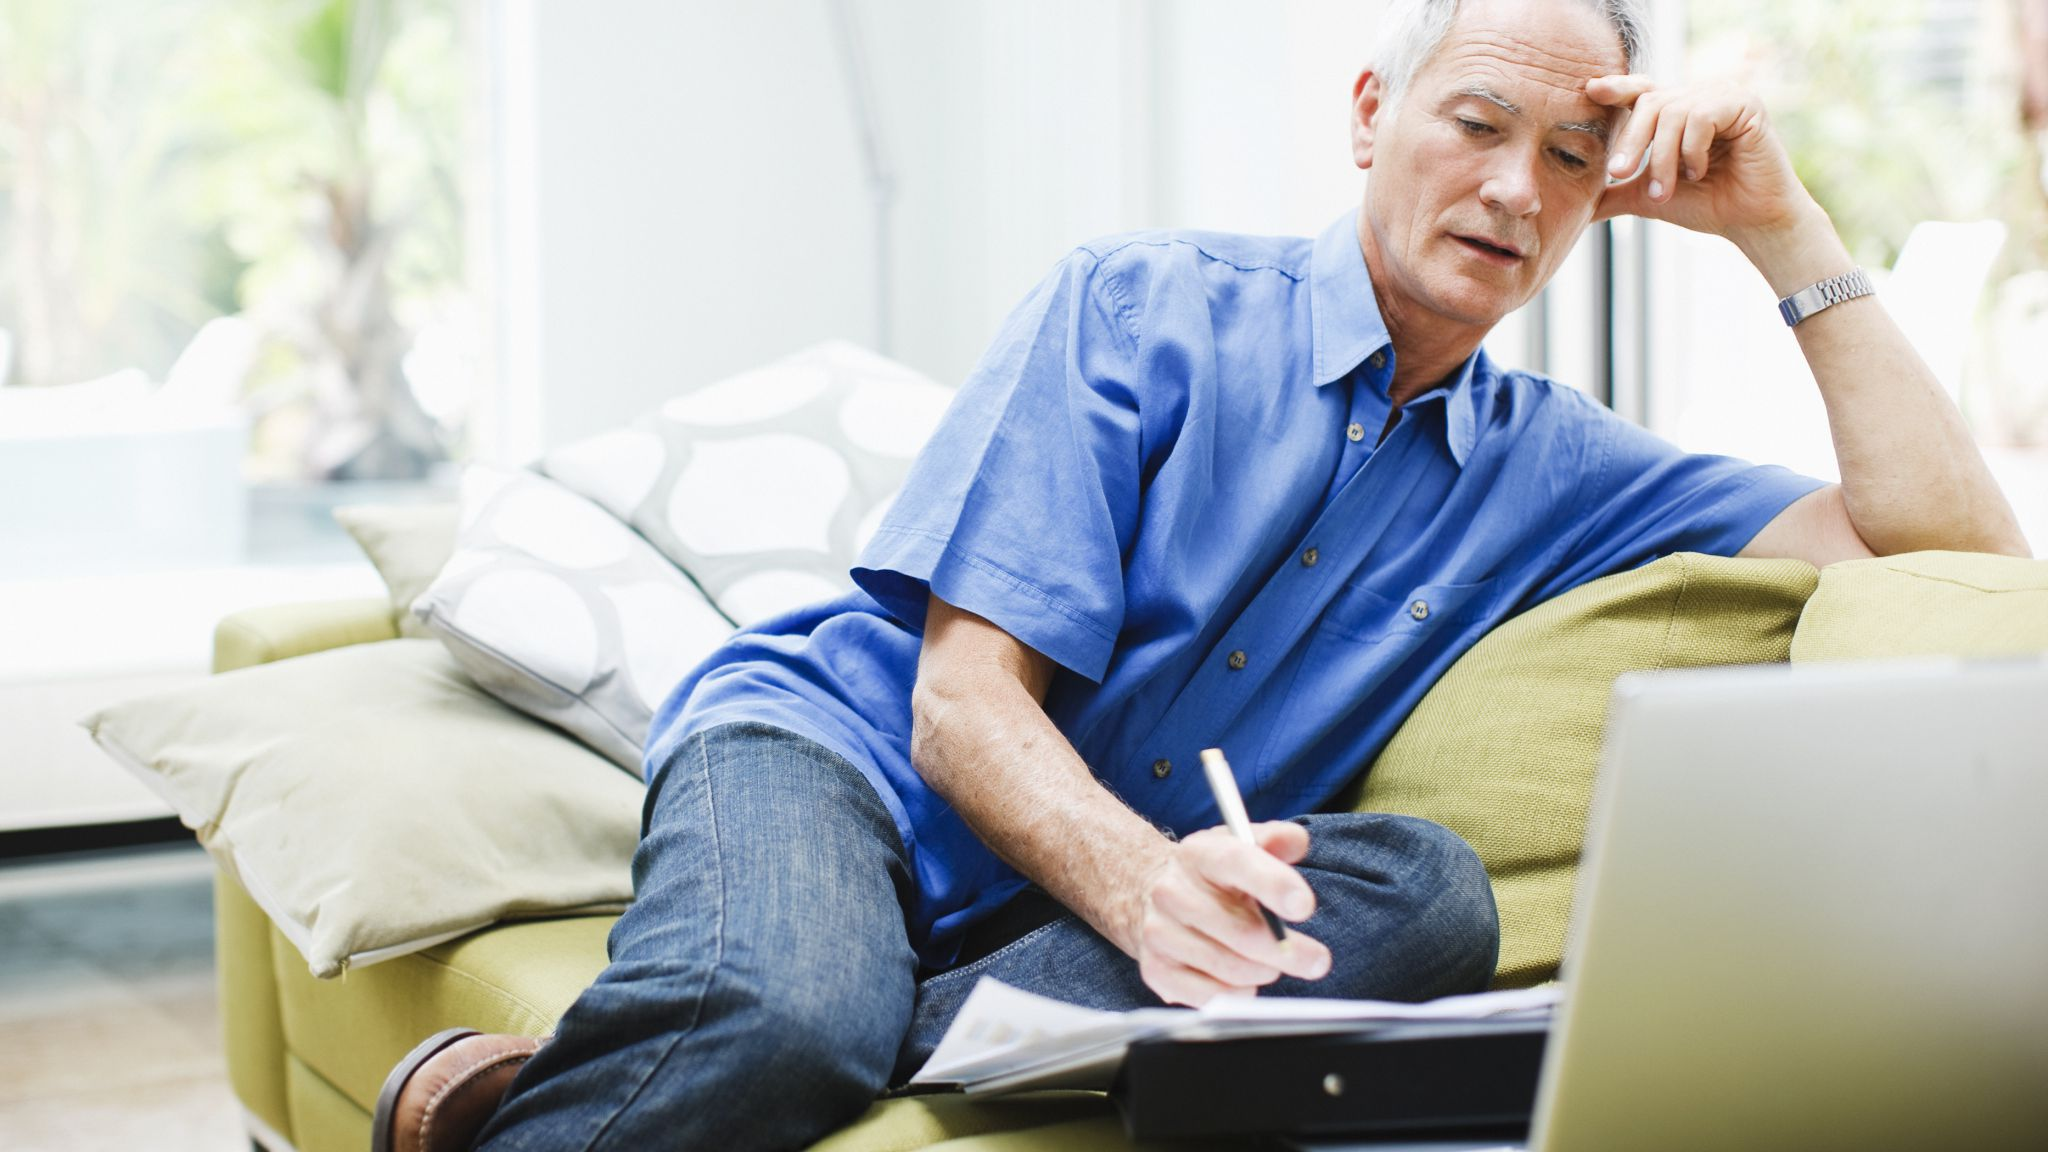 The SAGE Test: An At-Home, Online Dementia Test